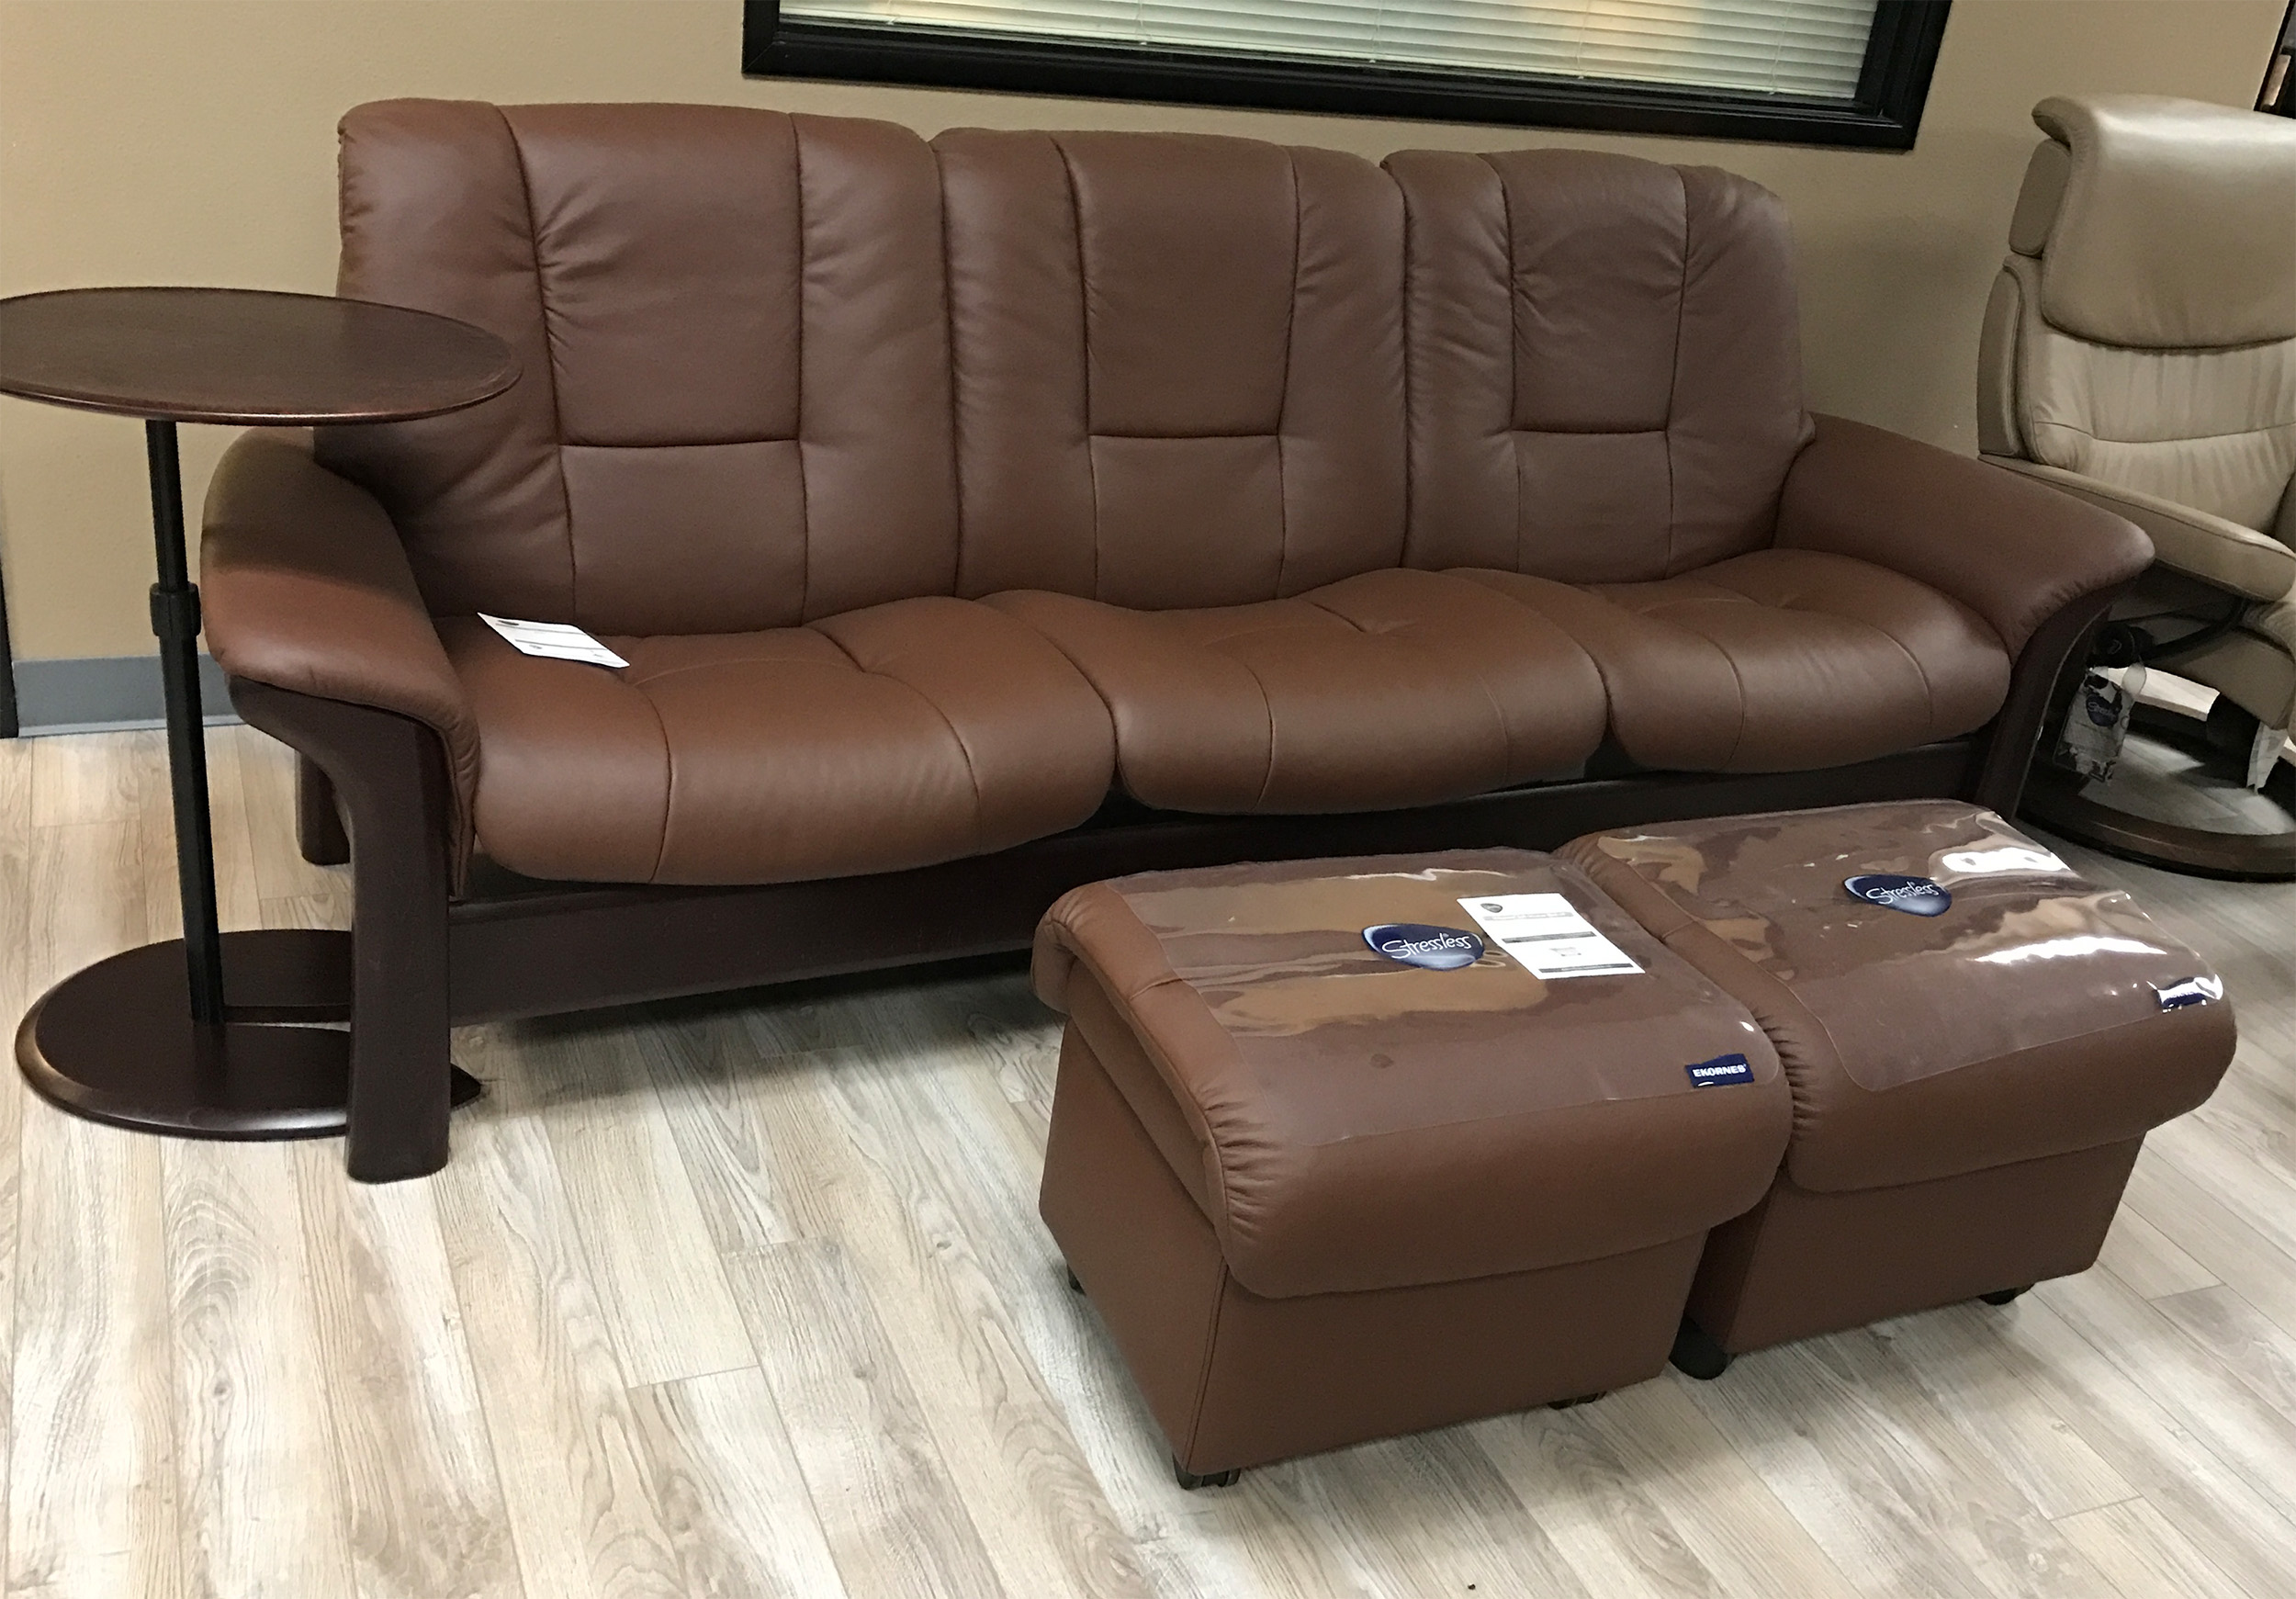 Full Size of Stressless Oslo Sofa Review Furniture Ekornes Leather Stella Uk Sofas And Chairs Couch Cost Nz Windsor For Sale Used Manhattan Colors Hay Mags Chesterfield Sofa Stressless Sofa